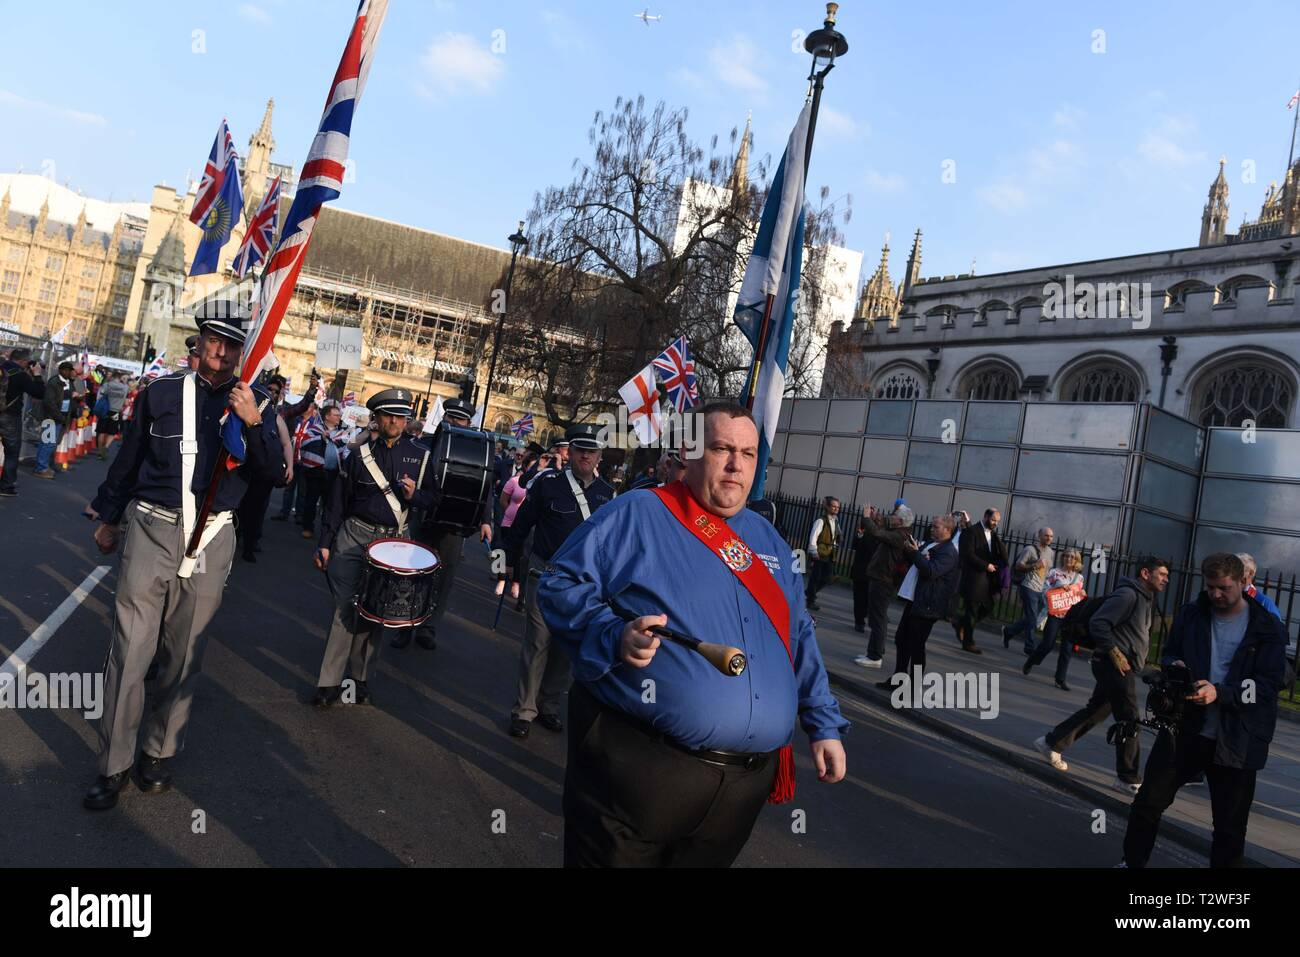 """*** FRANCE OUT / NO SALES TO FRENCH MEDIA *** March 29, 2019 - London, United Kingdom: Thousands of Brexit supporters rally outside the British parliament to protest against """"Brexit betrayal"""" on the day the UK was originally due to leave the European Union. Stock Photo"""